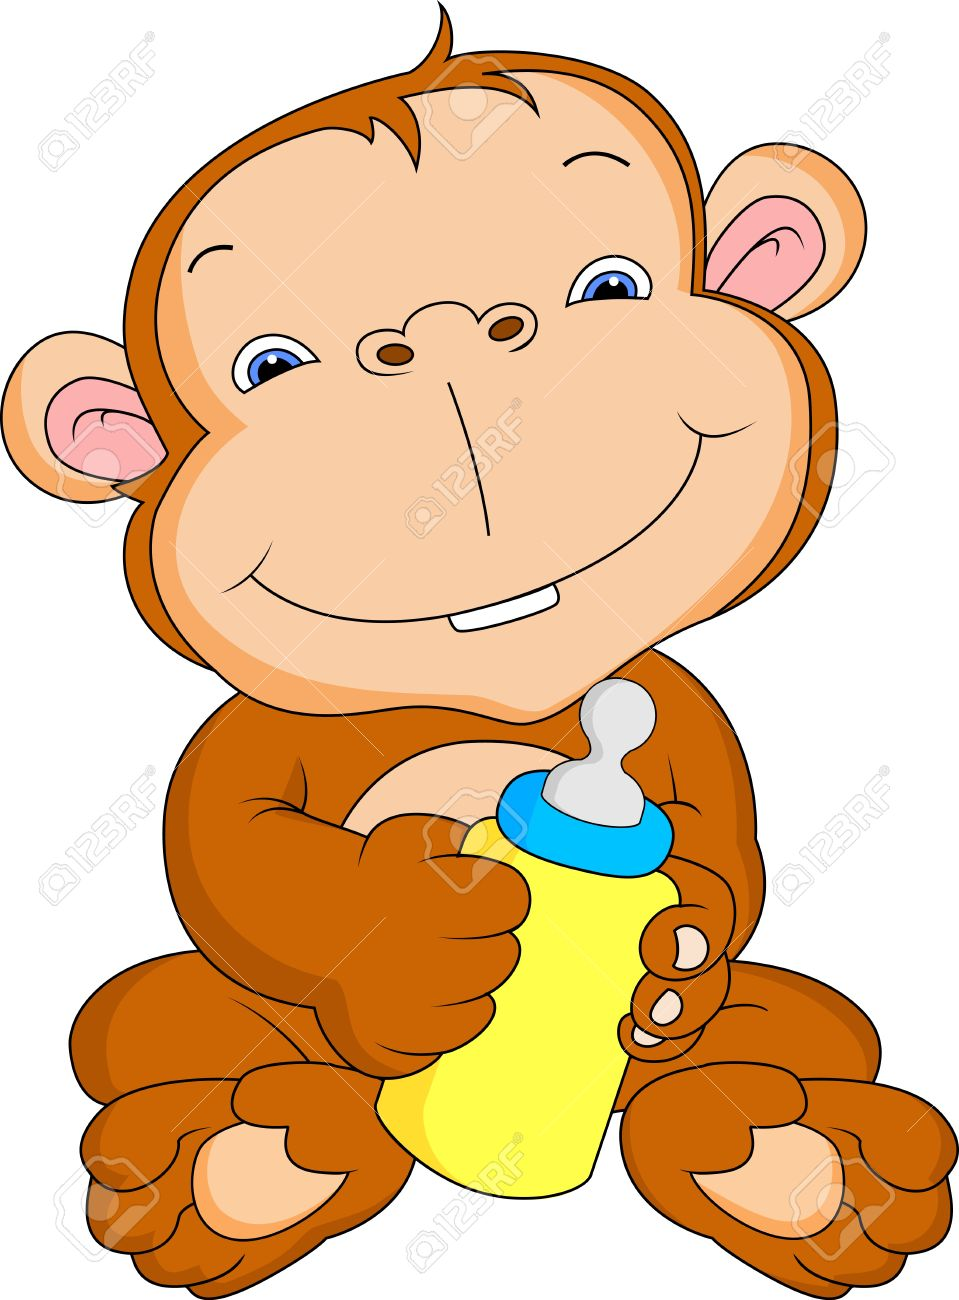 959x1300 Cute Baby Monkey Cartoon Royalty Free Cliparts, Vectors, And Stock